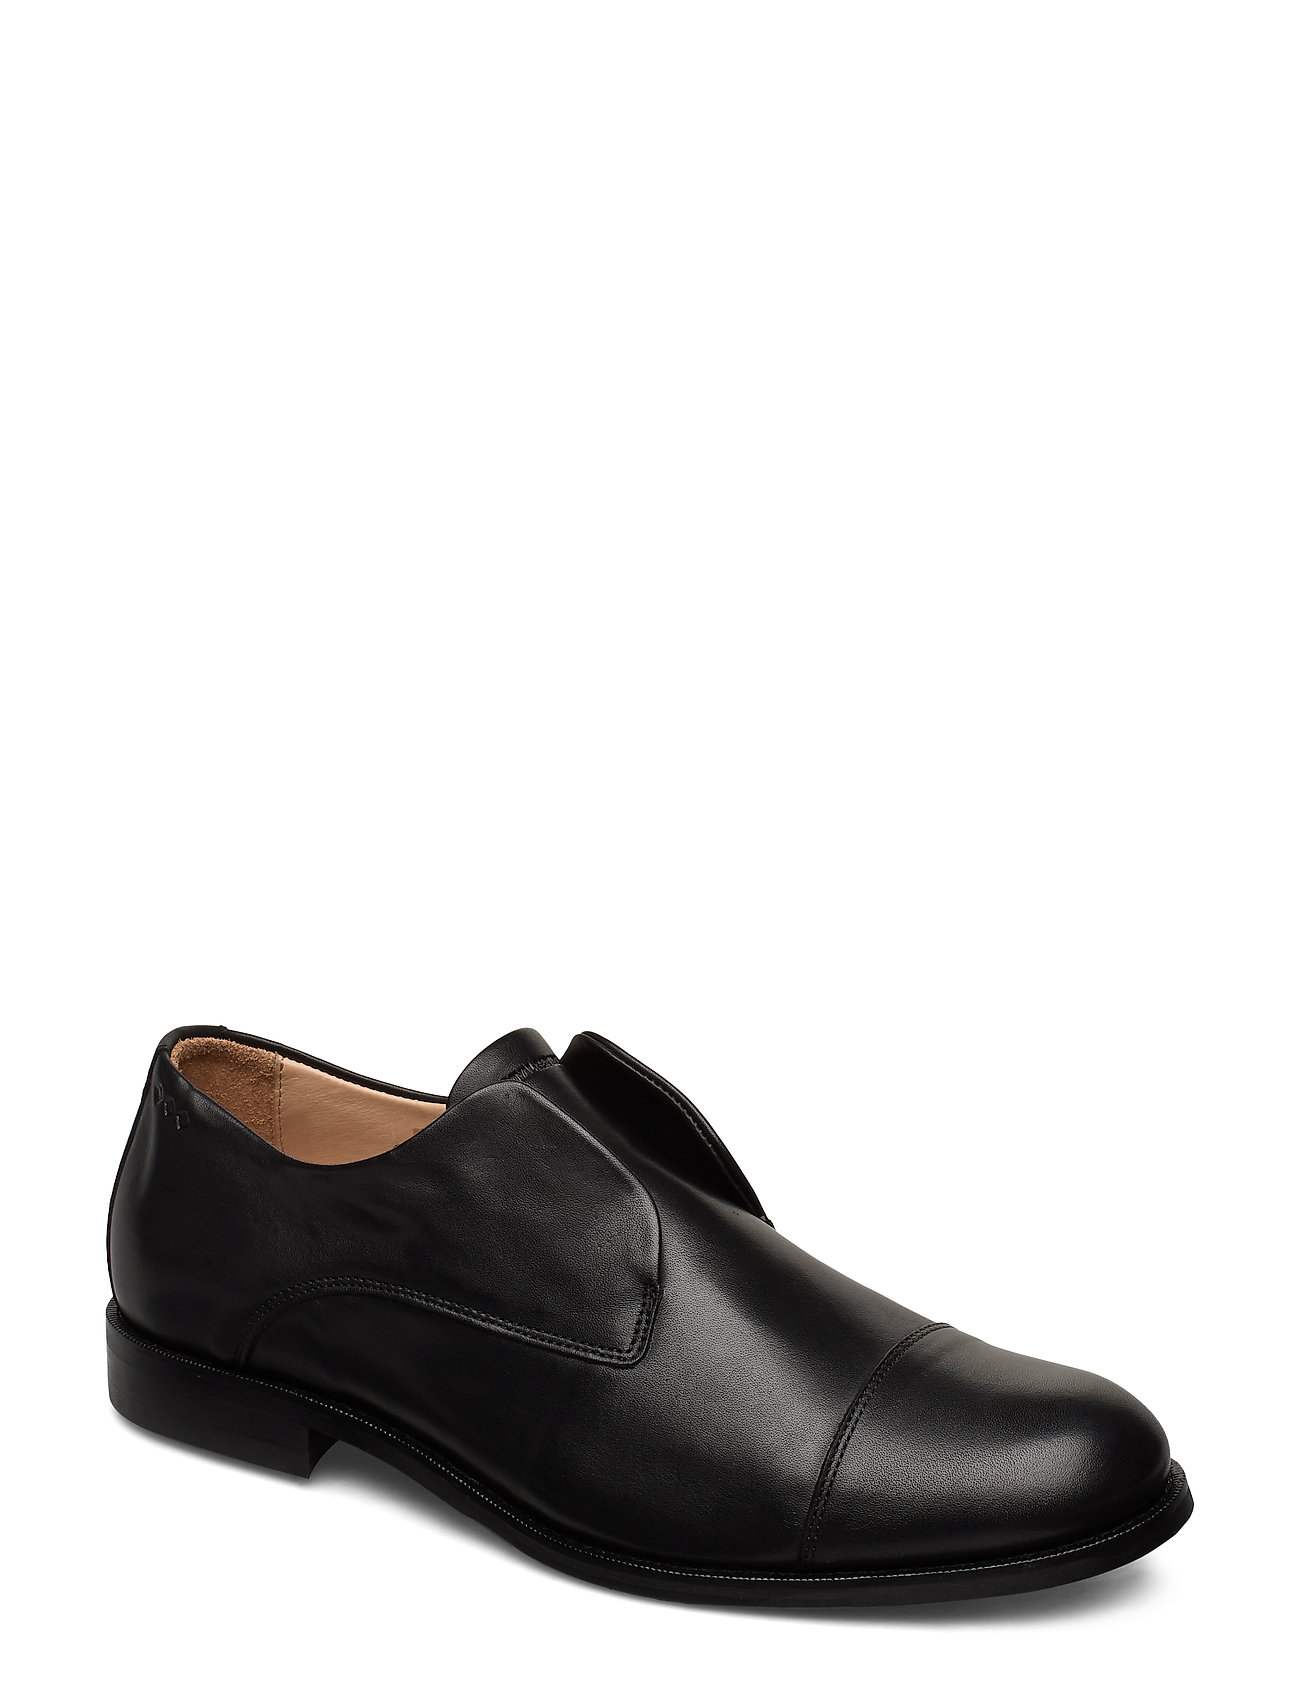 Royal RepubliQ Alias Classic Derby No Lace - BLACK